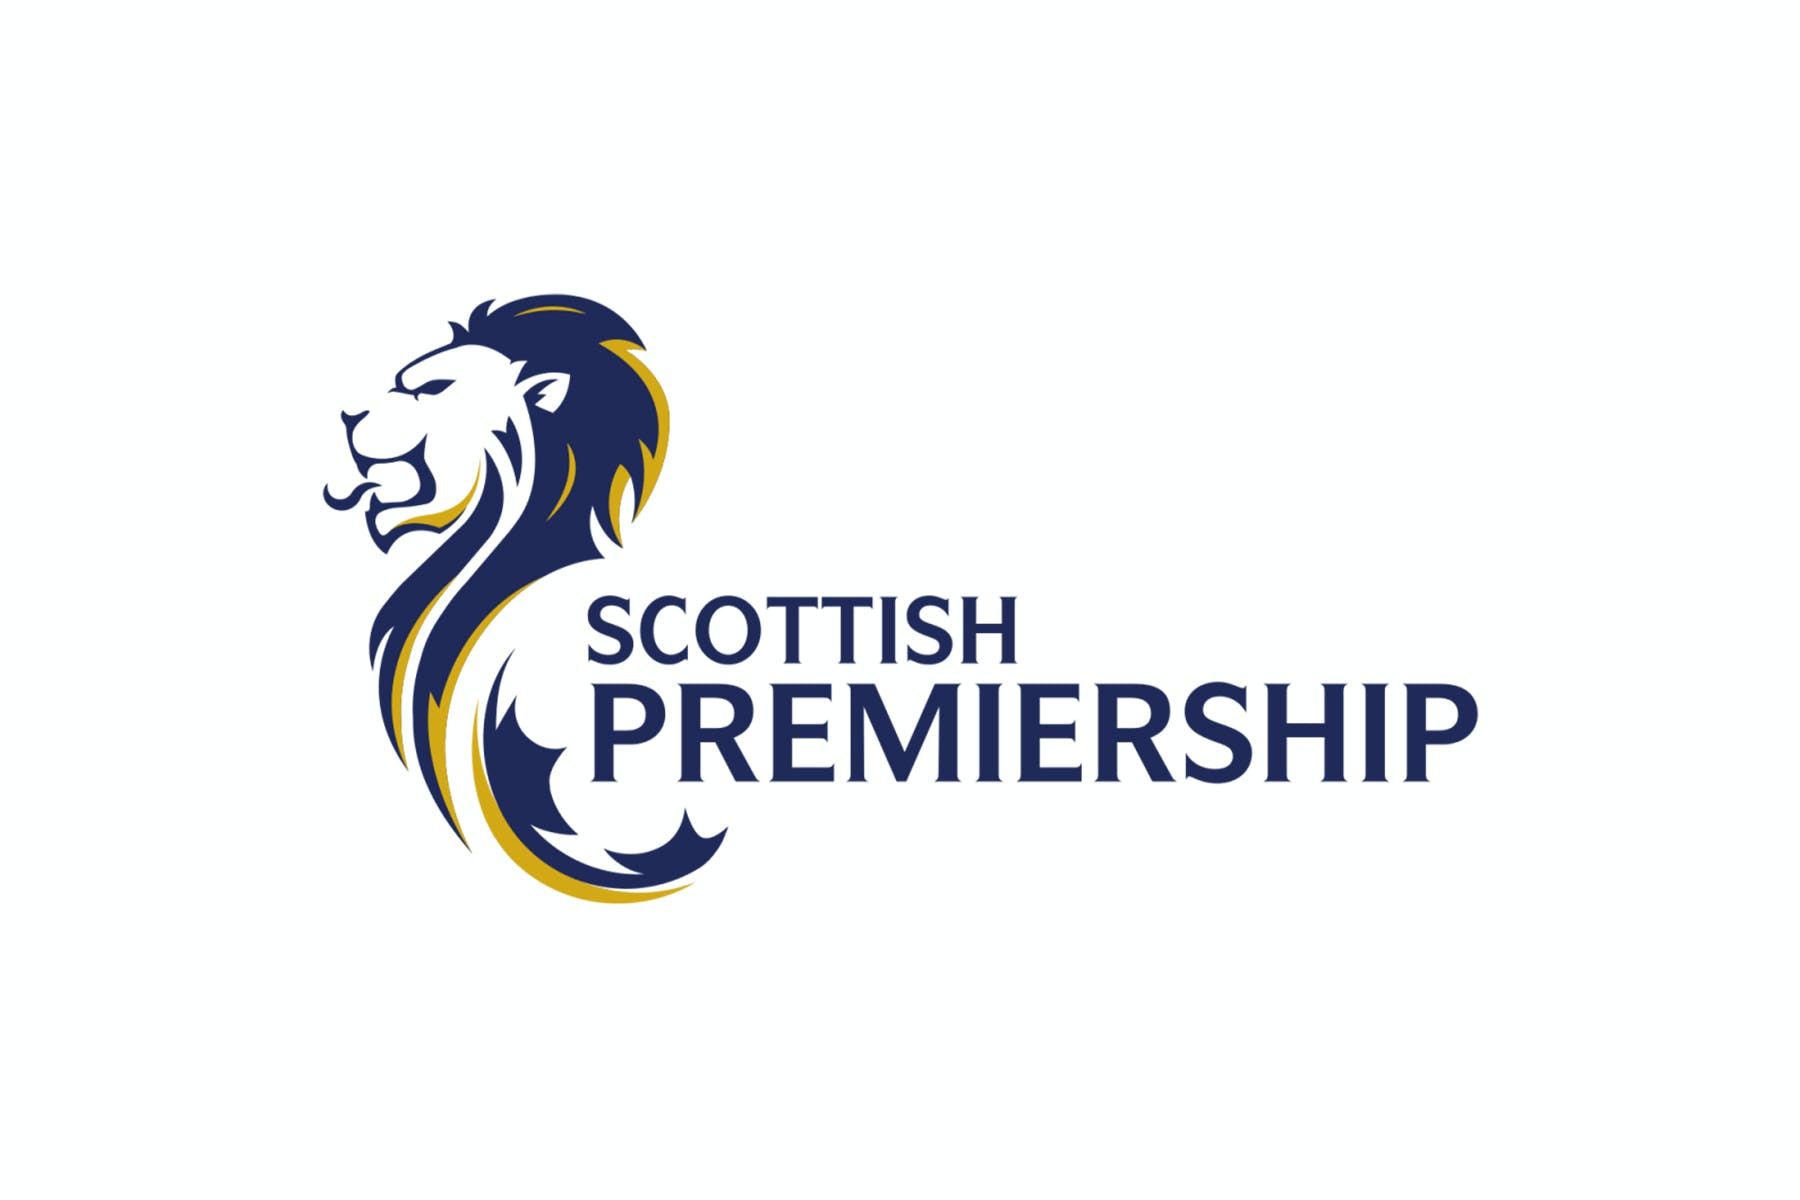 Scottish Premiership